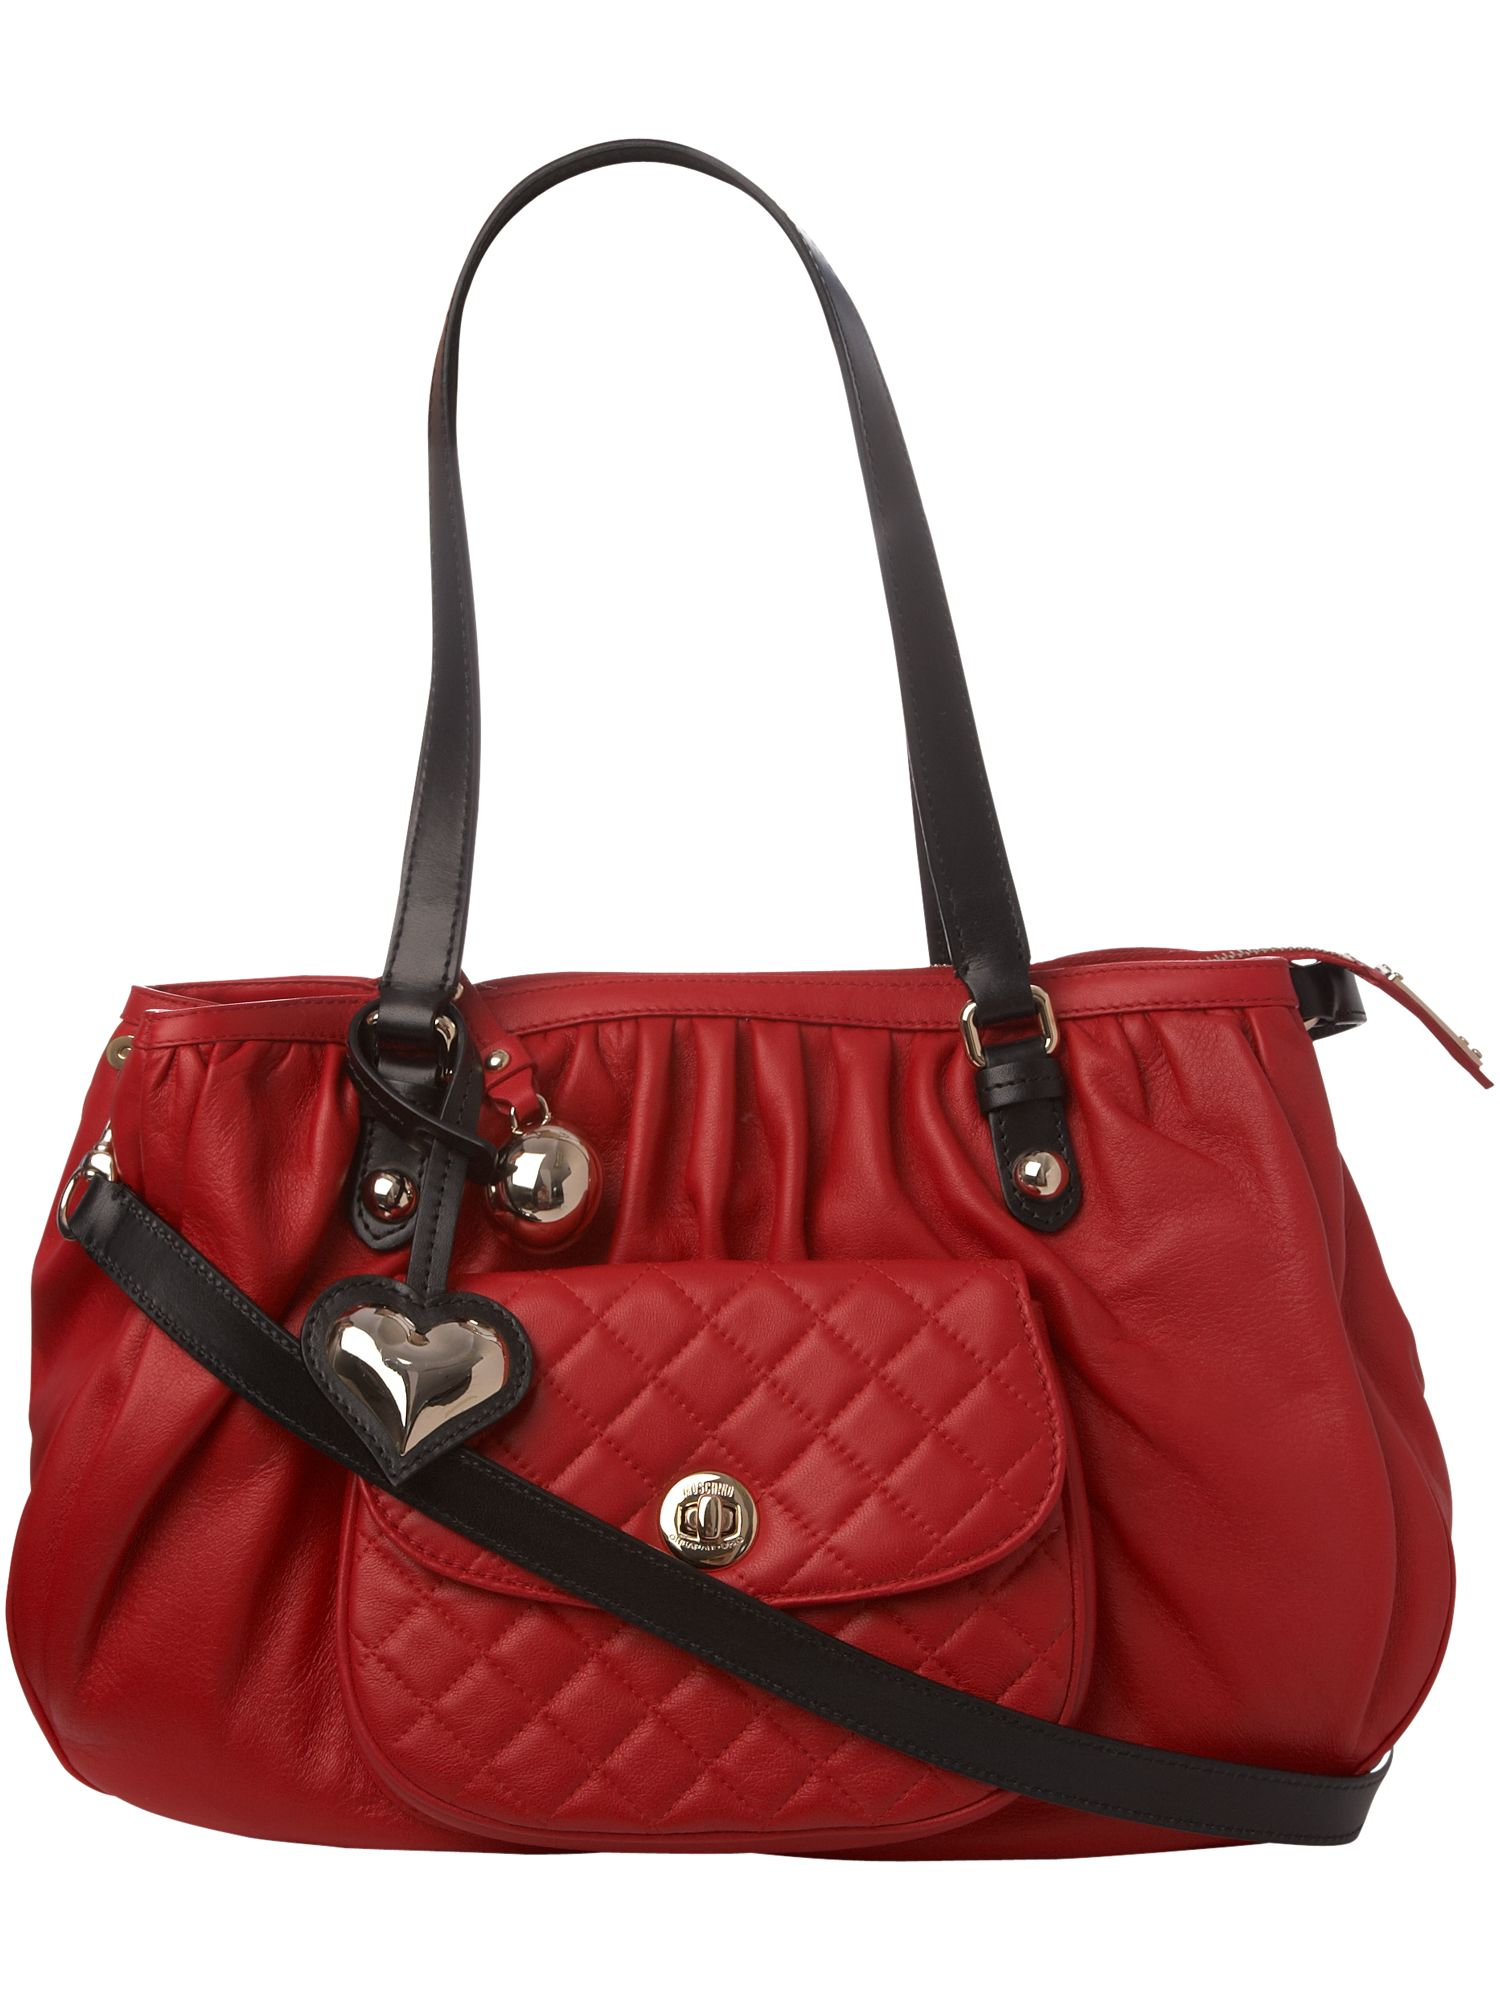 Moschino Cheap & Chic Nappa Medium leather Tote bag. product image